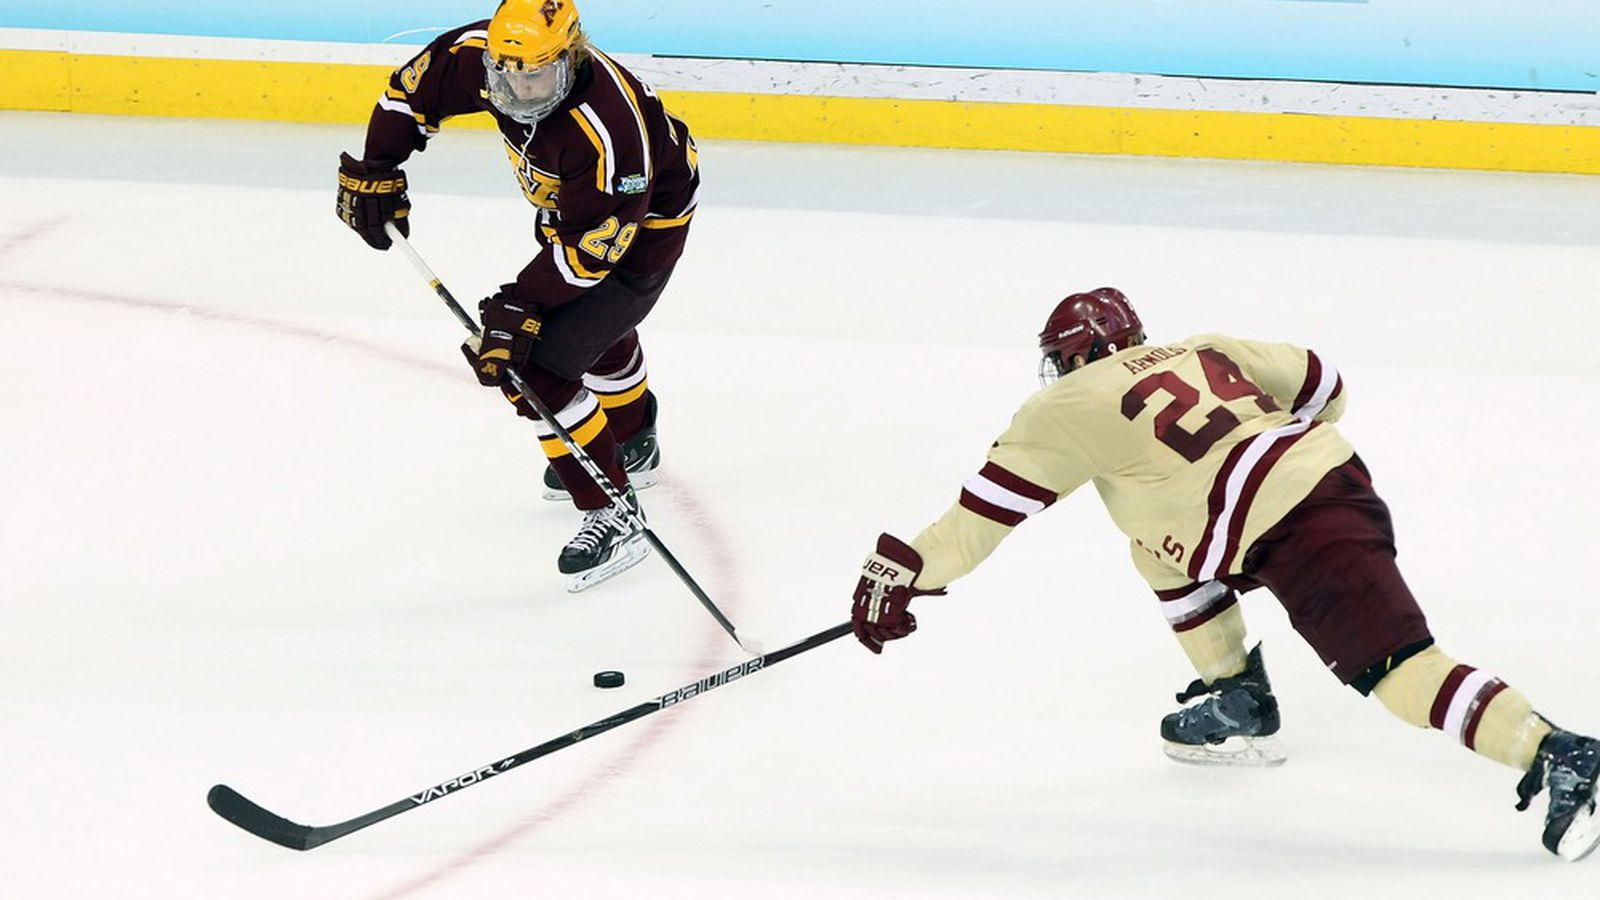 Minnesota Gopher Hockey loses 4-3 to St Cloud for Series ... Gopher Hockey